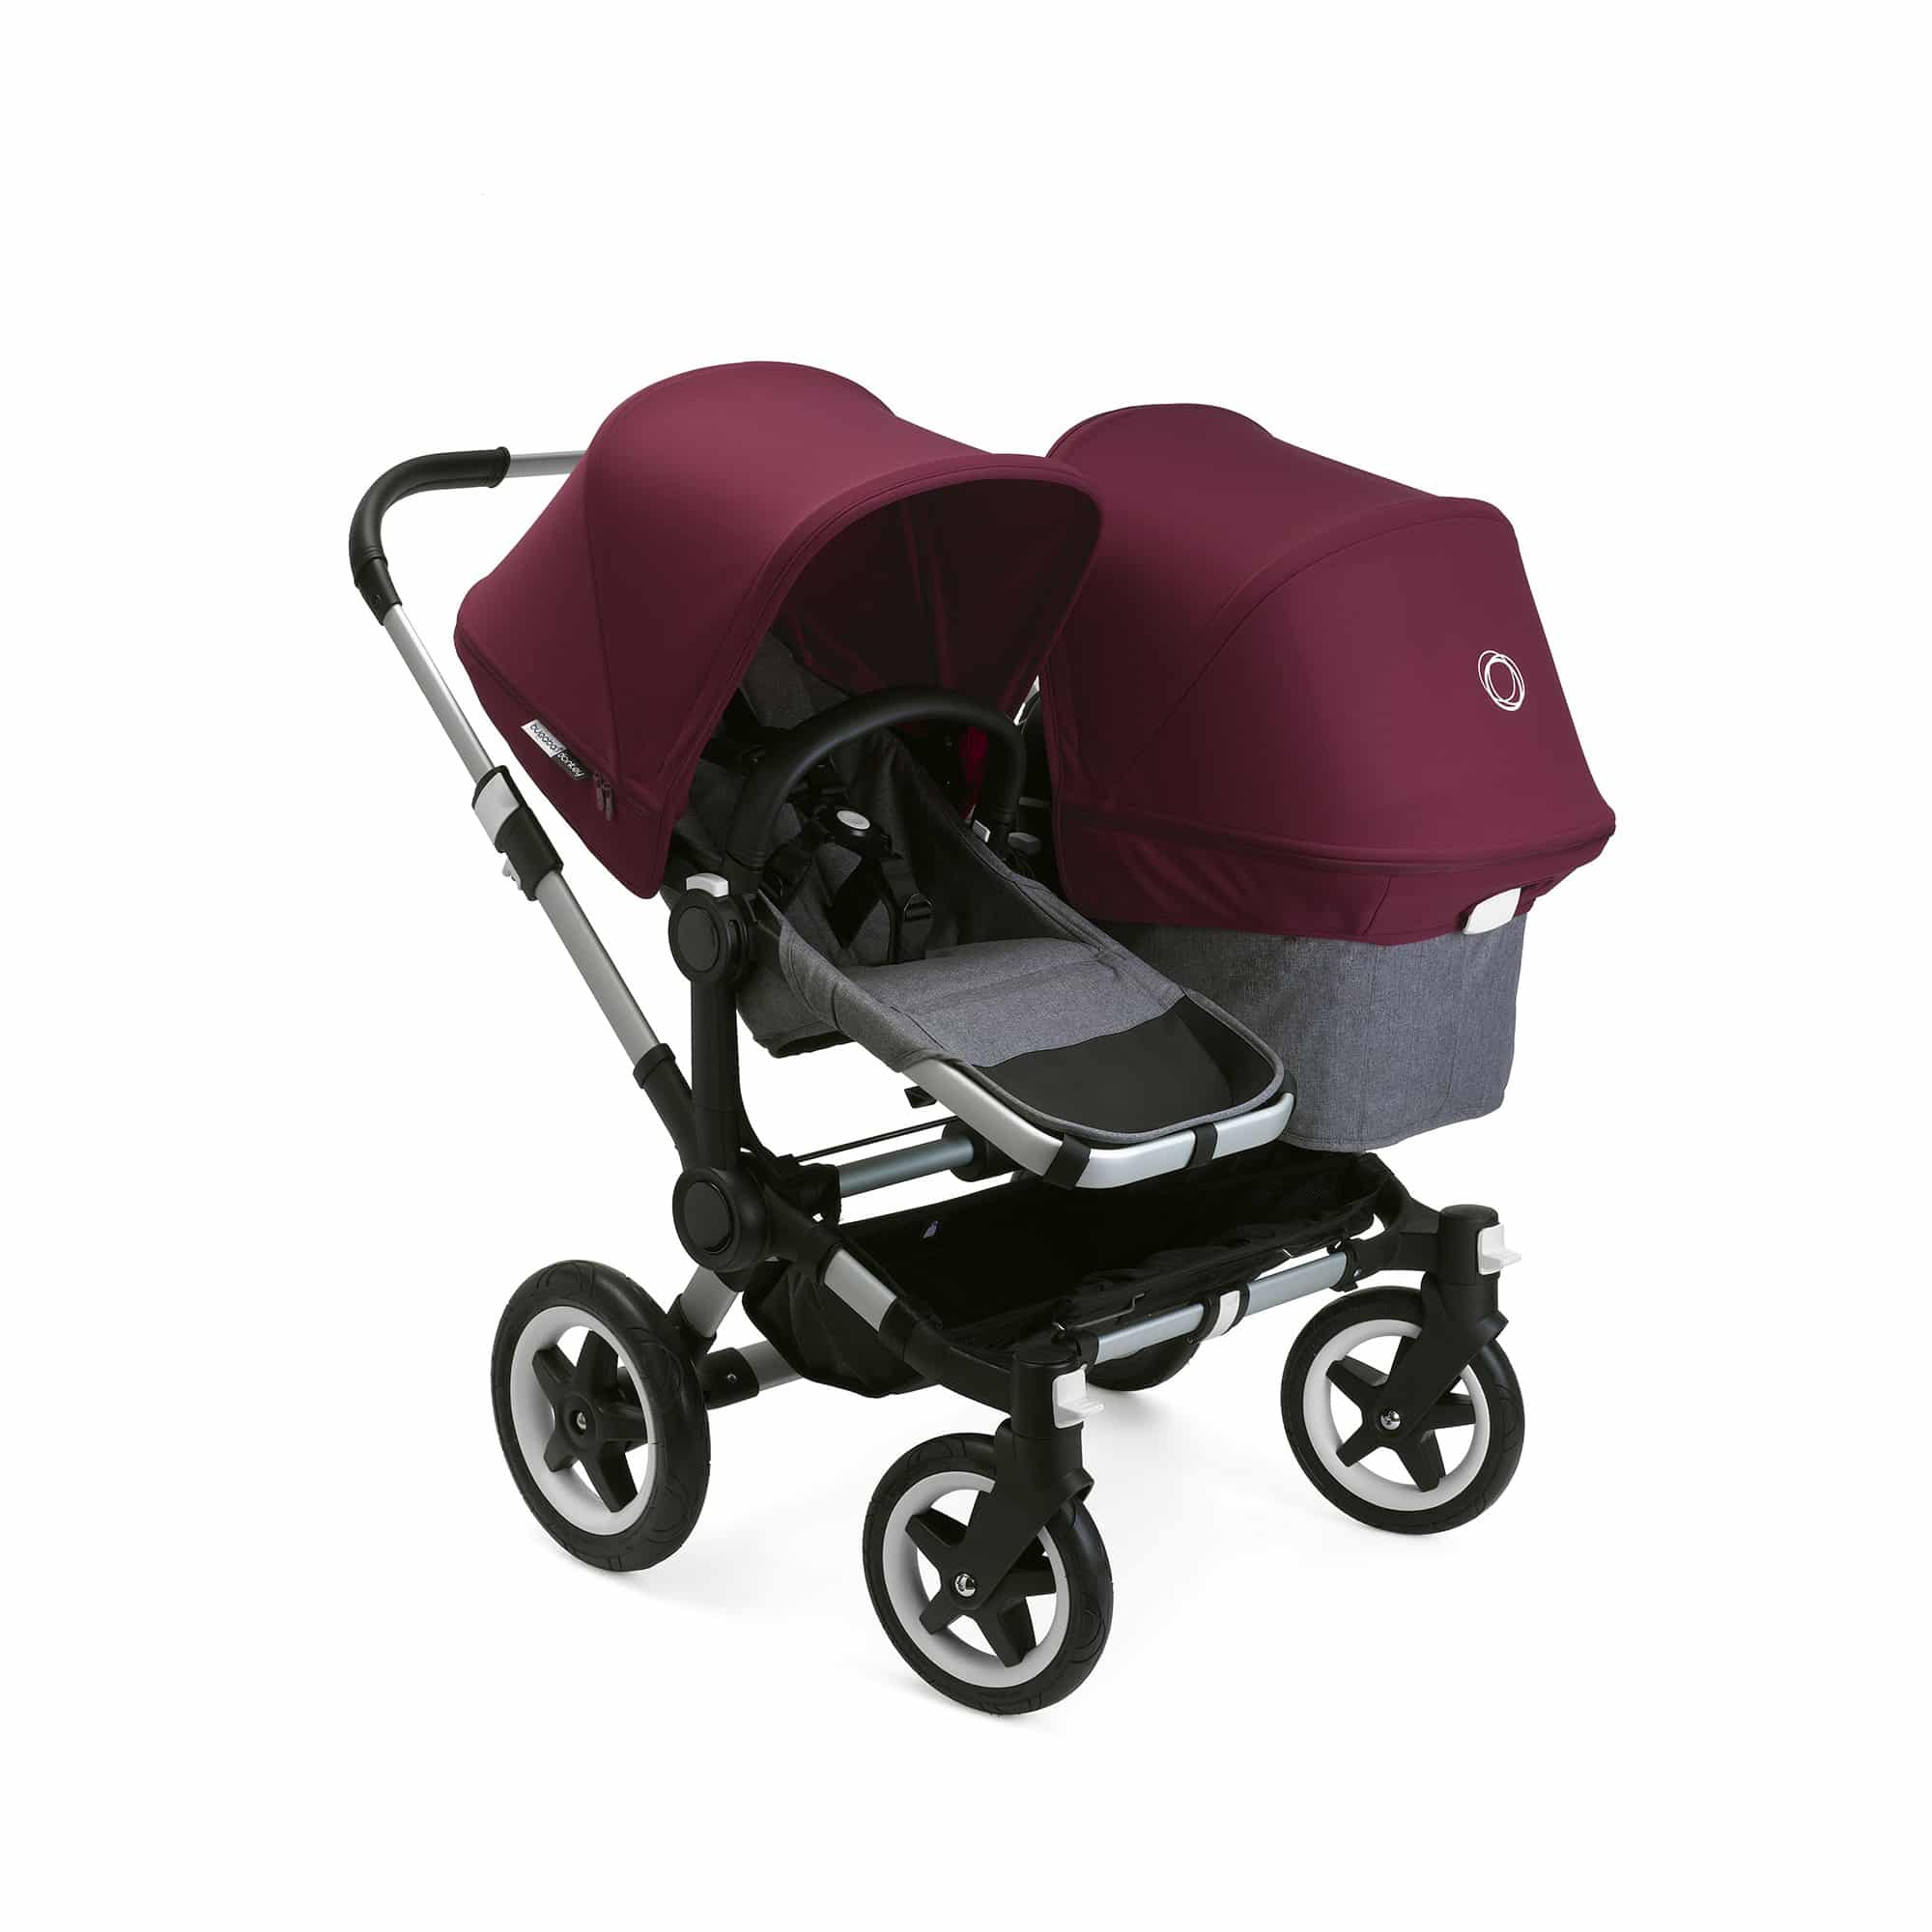 Bugaboo Donkey | Top 5 Best Bugaboo Stroller Reviews